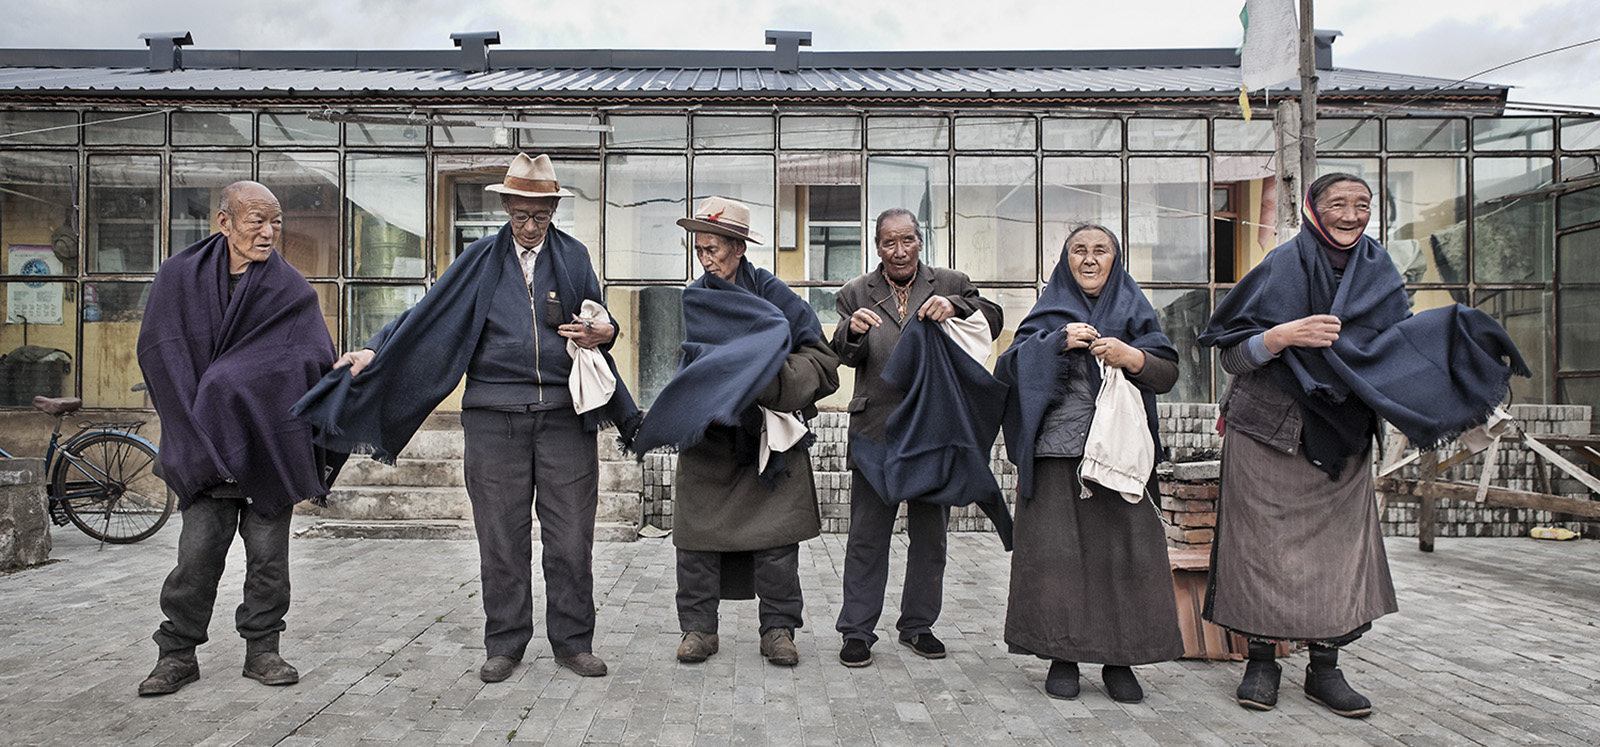 All over 80 year olds in the village of Ritoma, Amdo, Tibet, receive a new scarf for Sagadawa from Norlha Textiles.